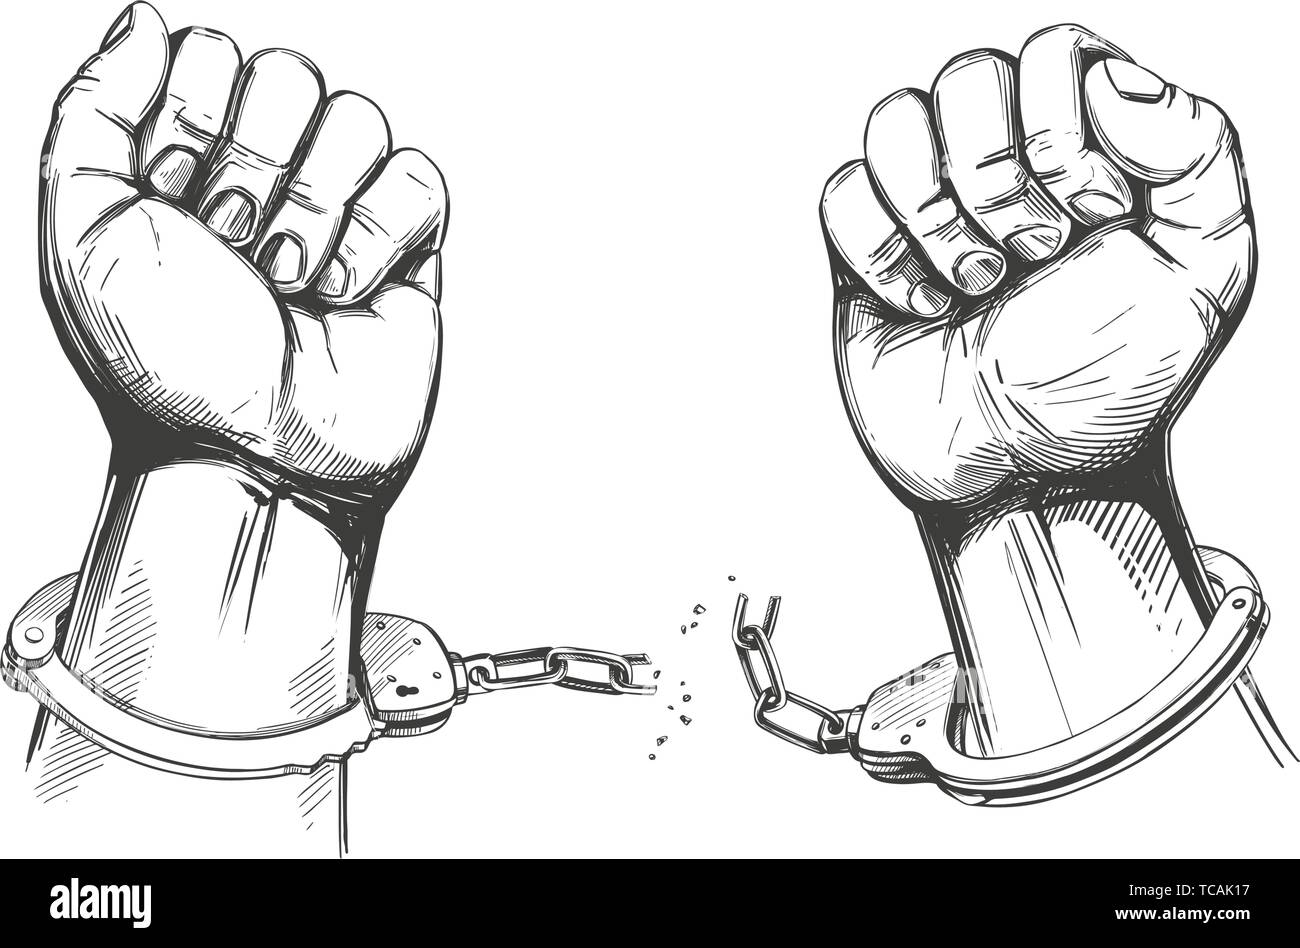 hands break the chain handcuffs, a symbol of freedom and forgiveness icon hand drawn vector illustration sketch - Stock Image